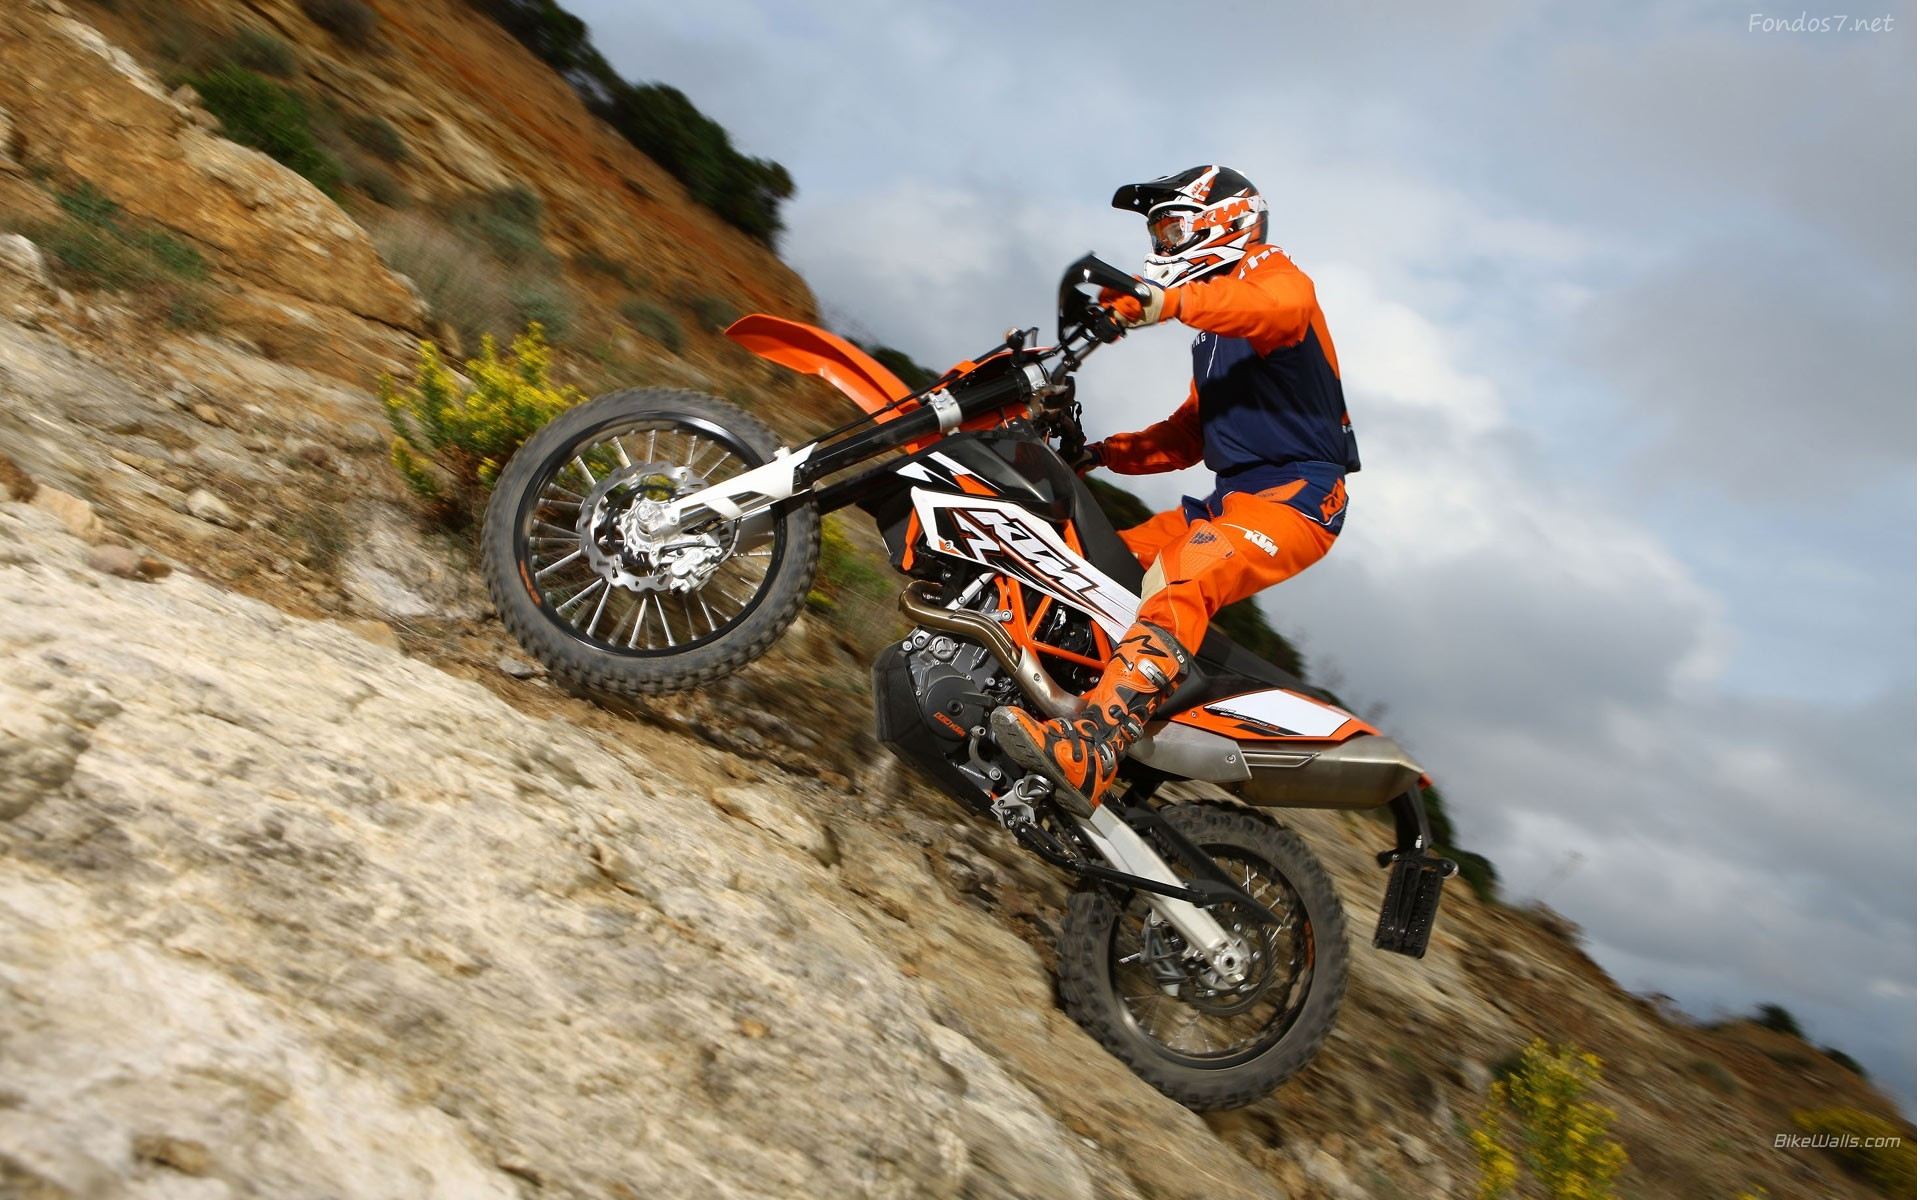 Hd Wallpapers Ktm Motocross 1440 X 900 1029 Kb Jpeg HD Wallpapers 1920x1200